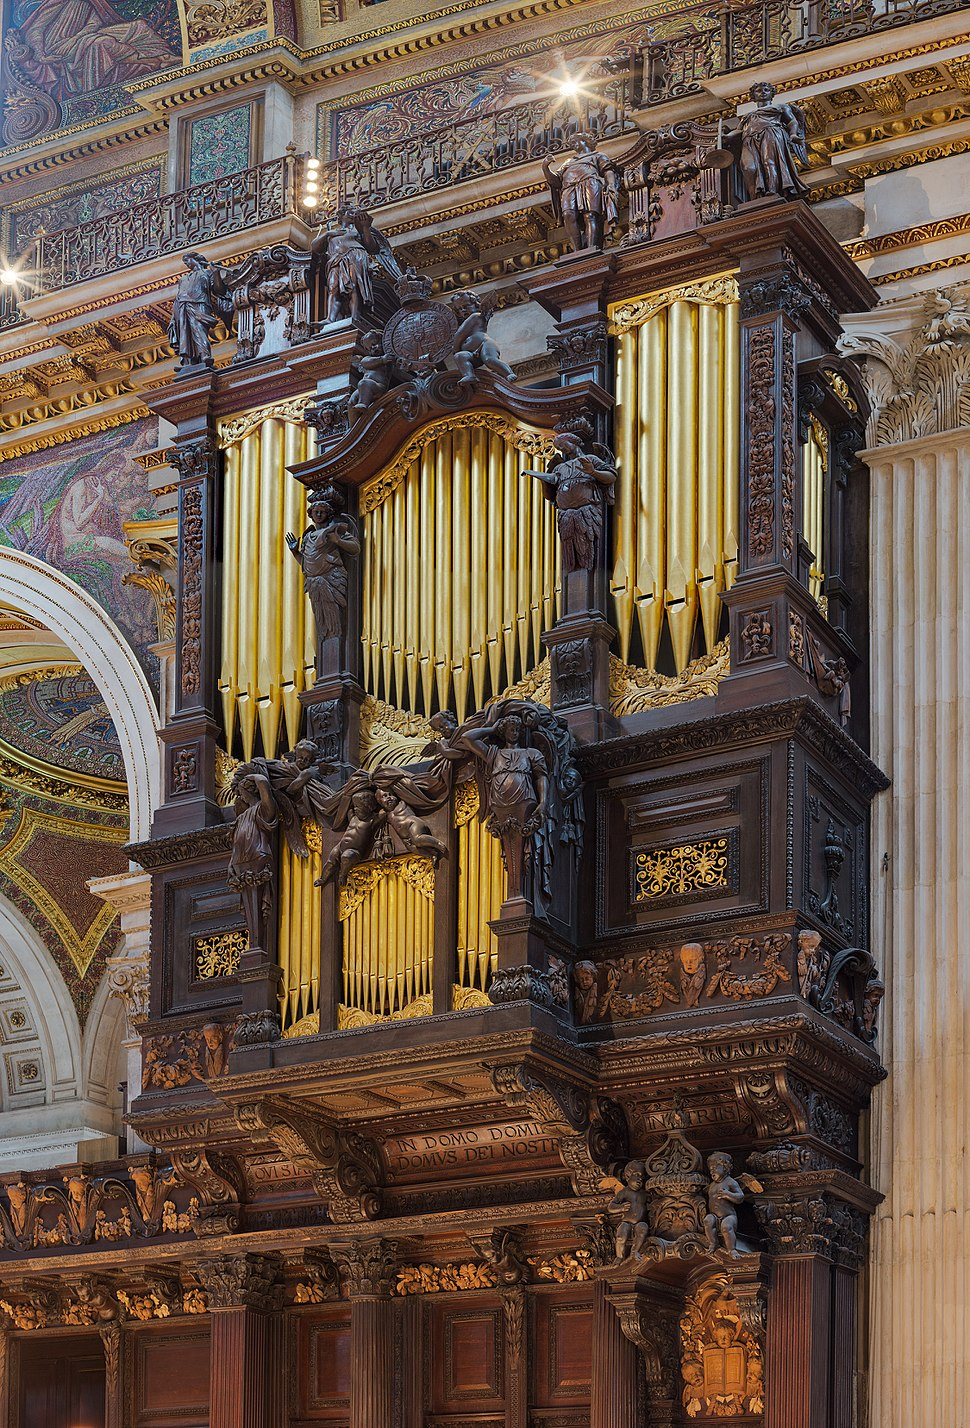 St Paul's Cathedral South Organ, London, UK - Diliff